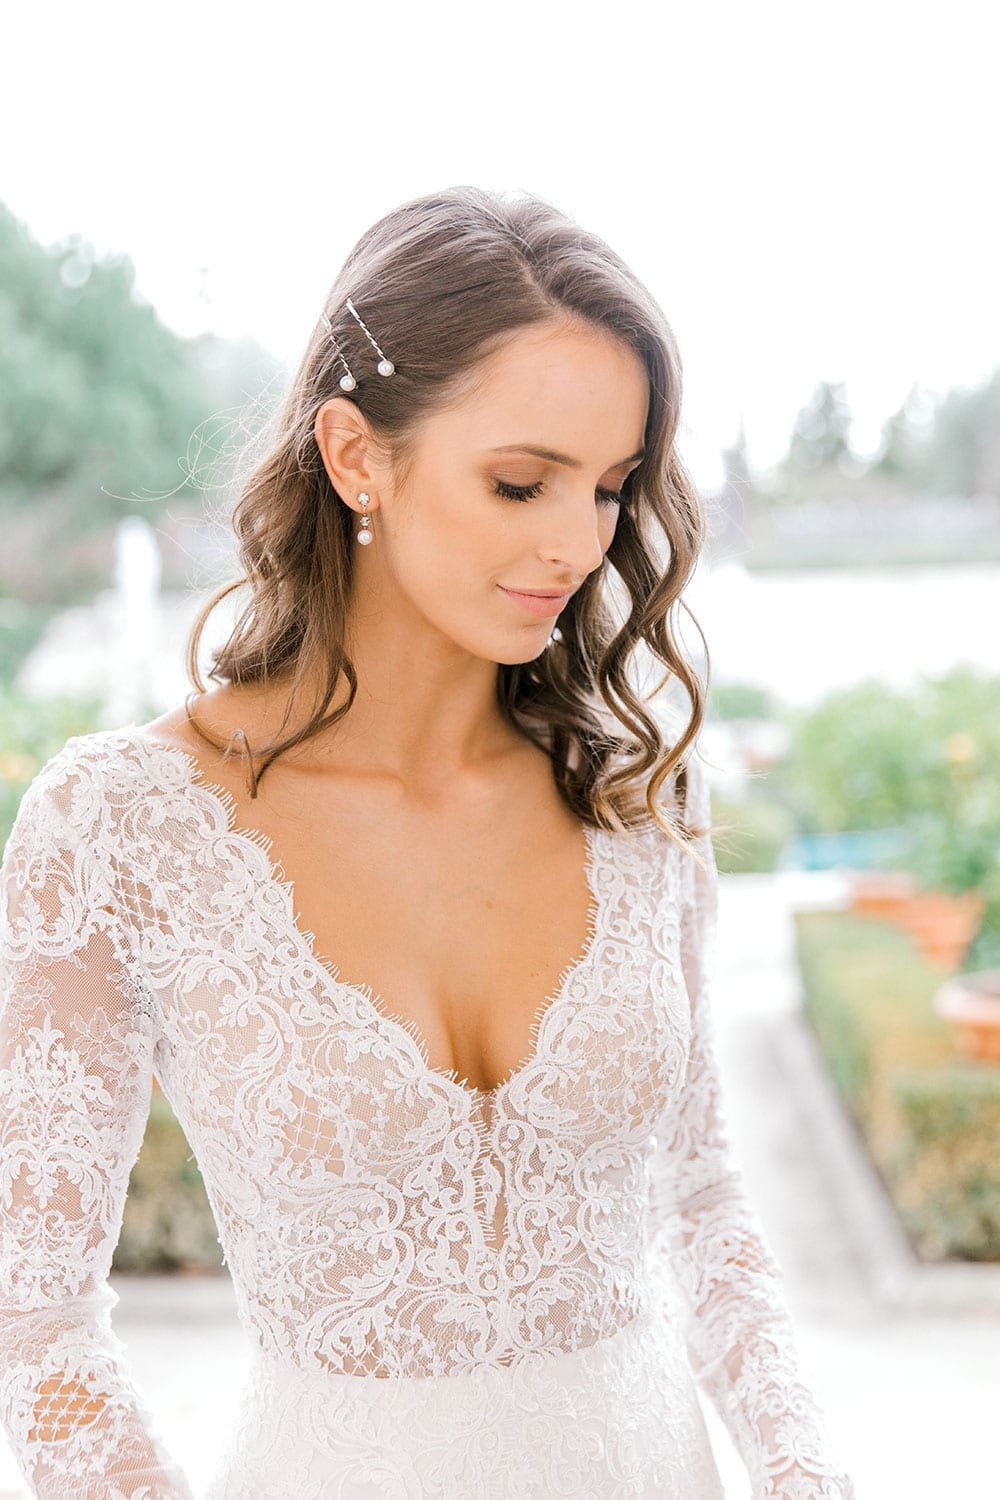 Model wearing Vinka Design Nadene Wedding Dress, a Long Sleeve Lace Wedding Gown outside old building with beautiful garden close up